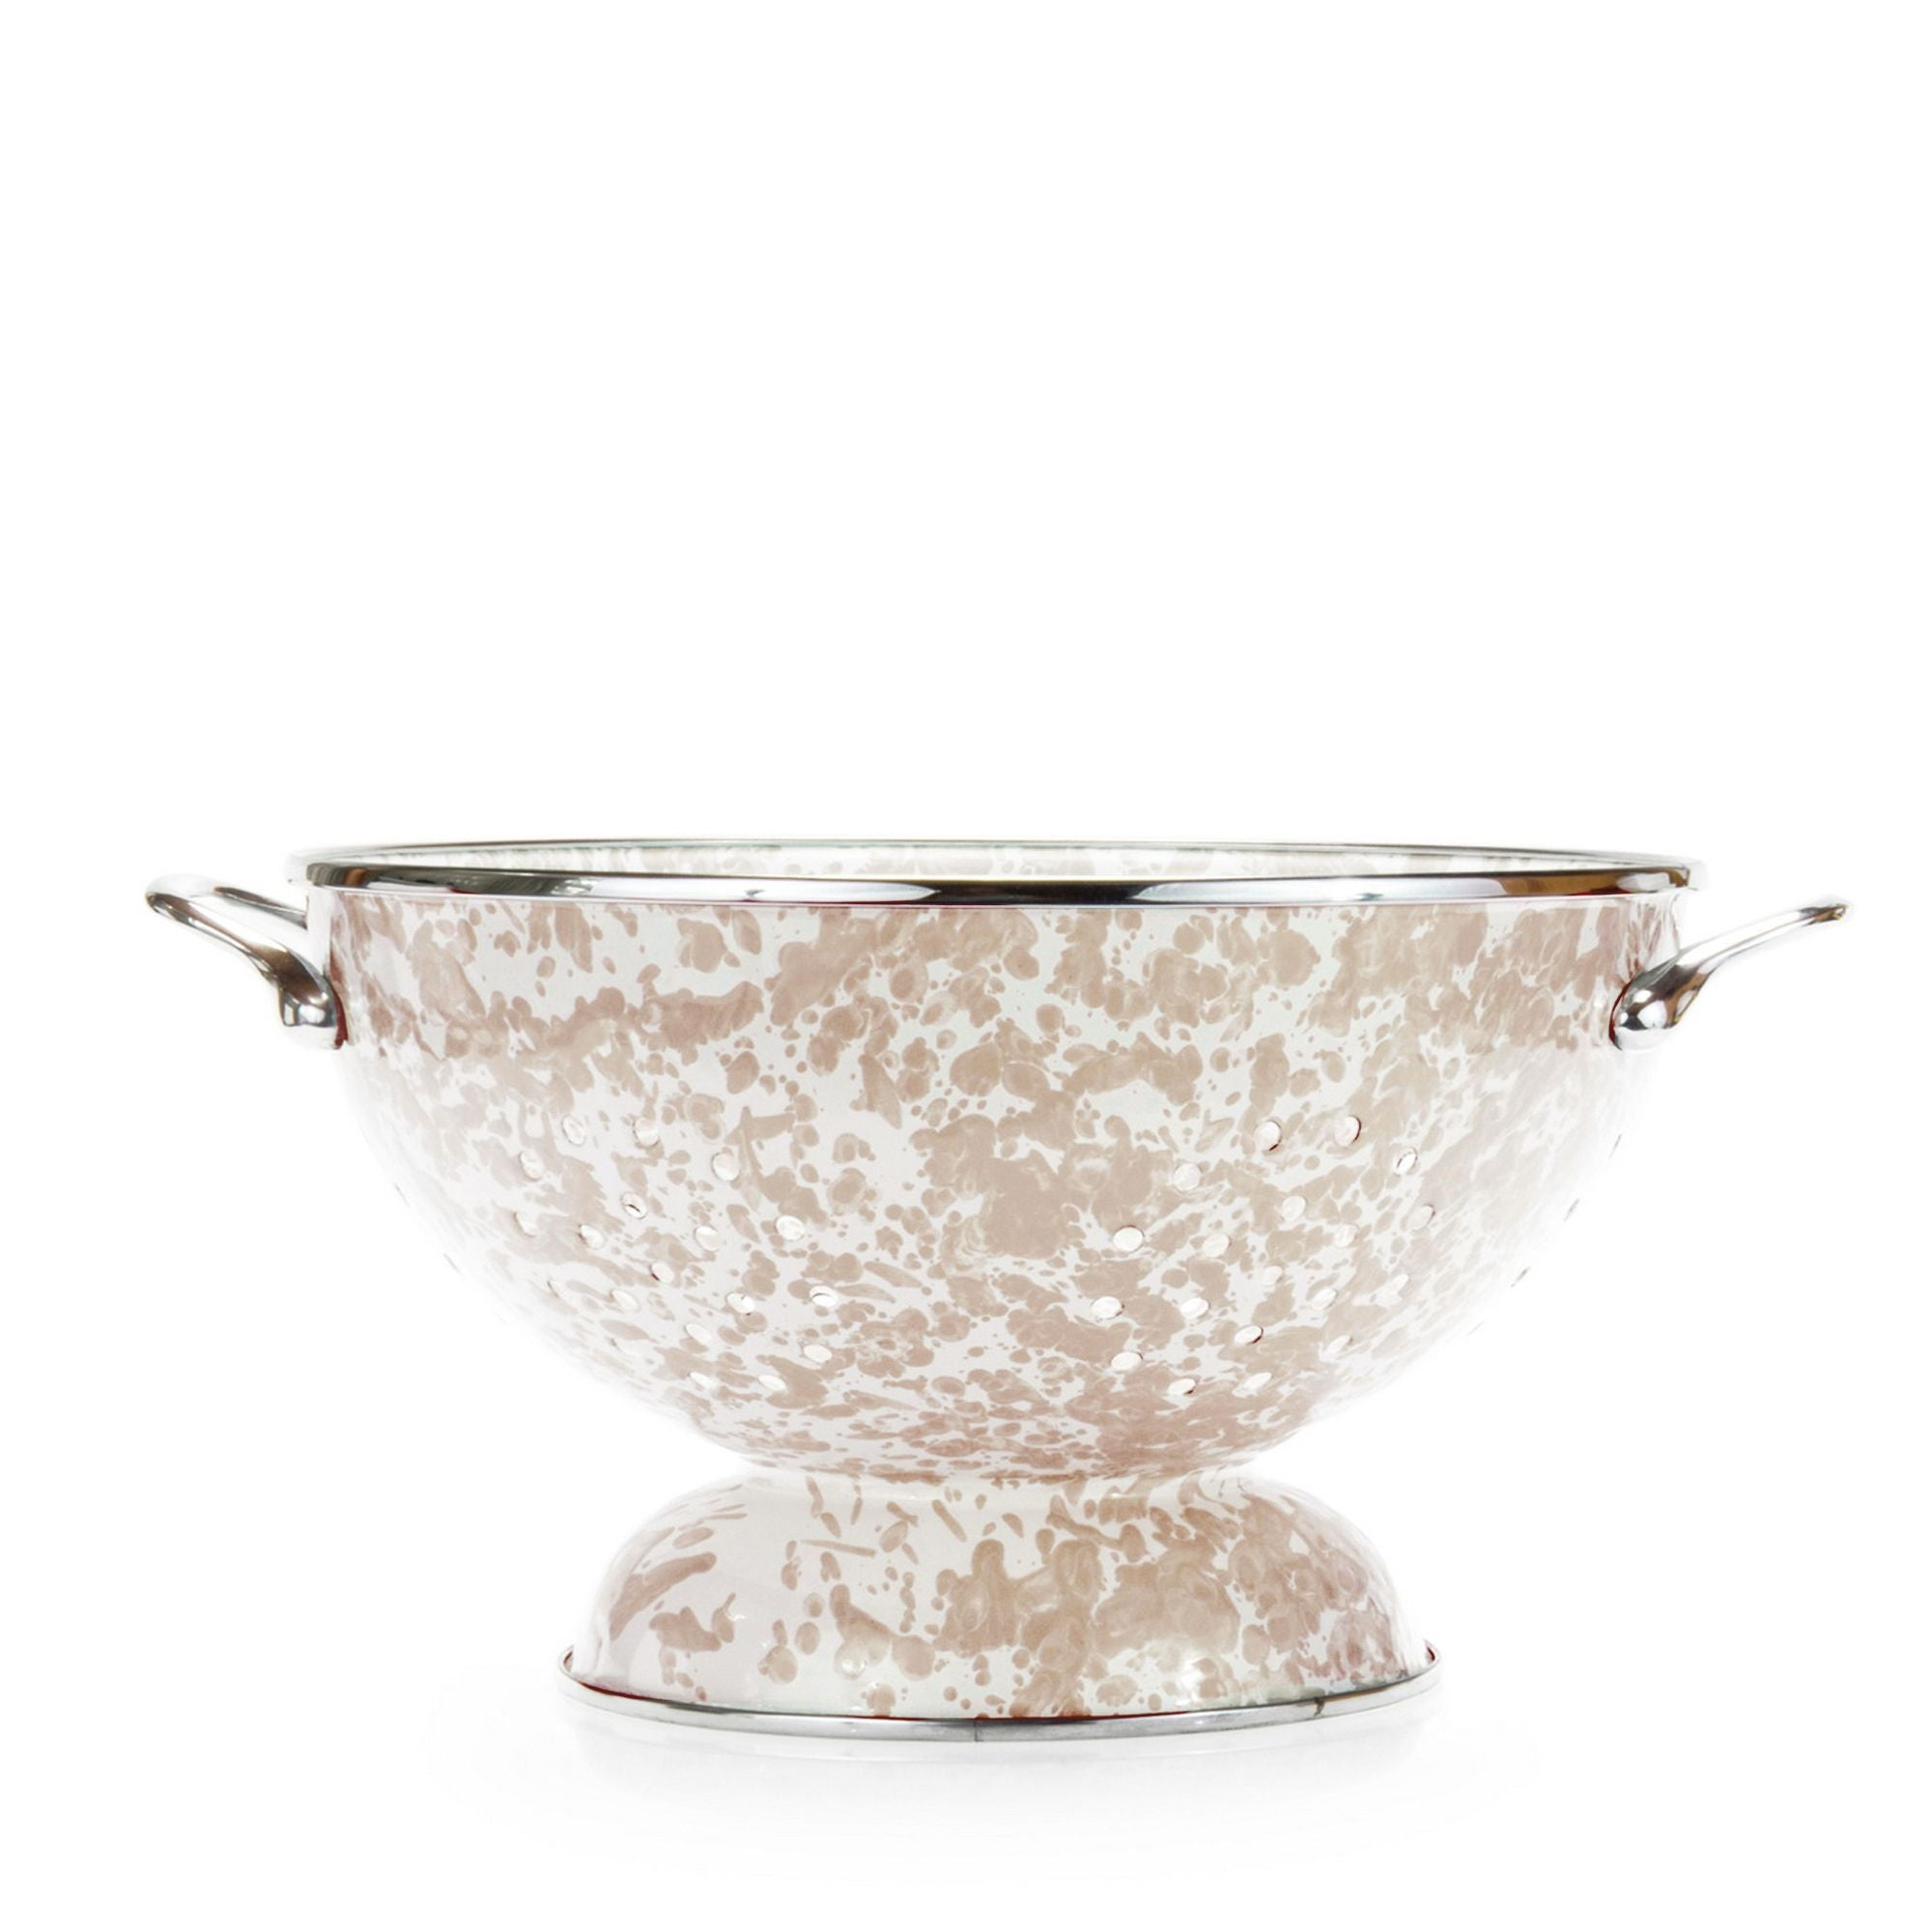 TP25 Taupe Swirl Large Colander